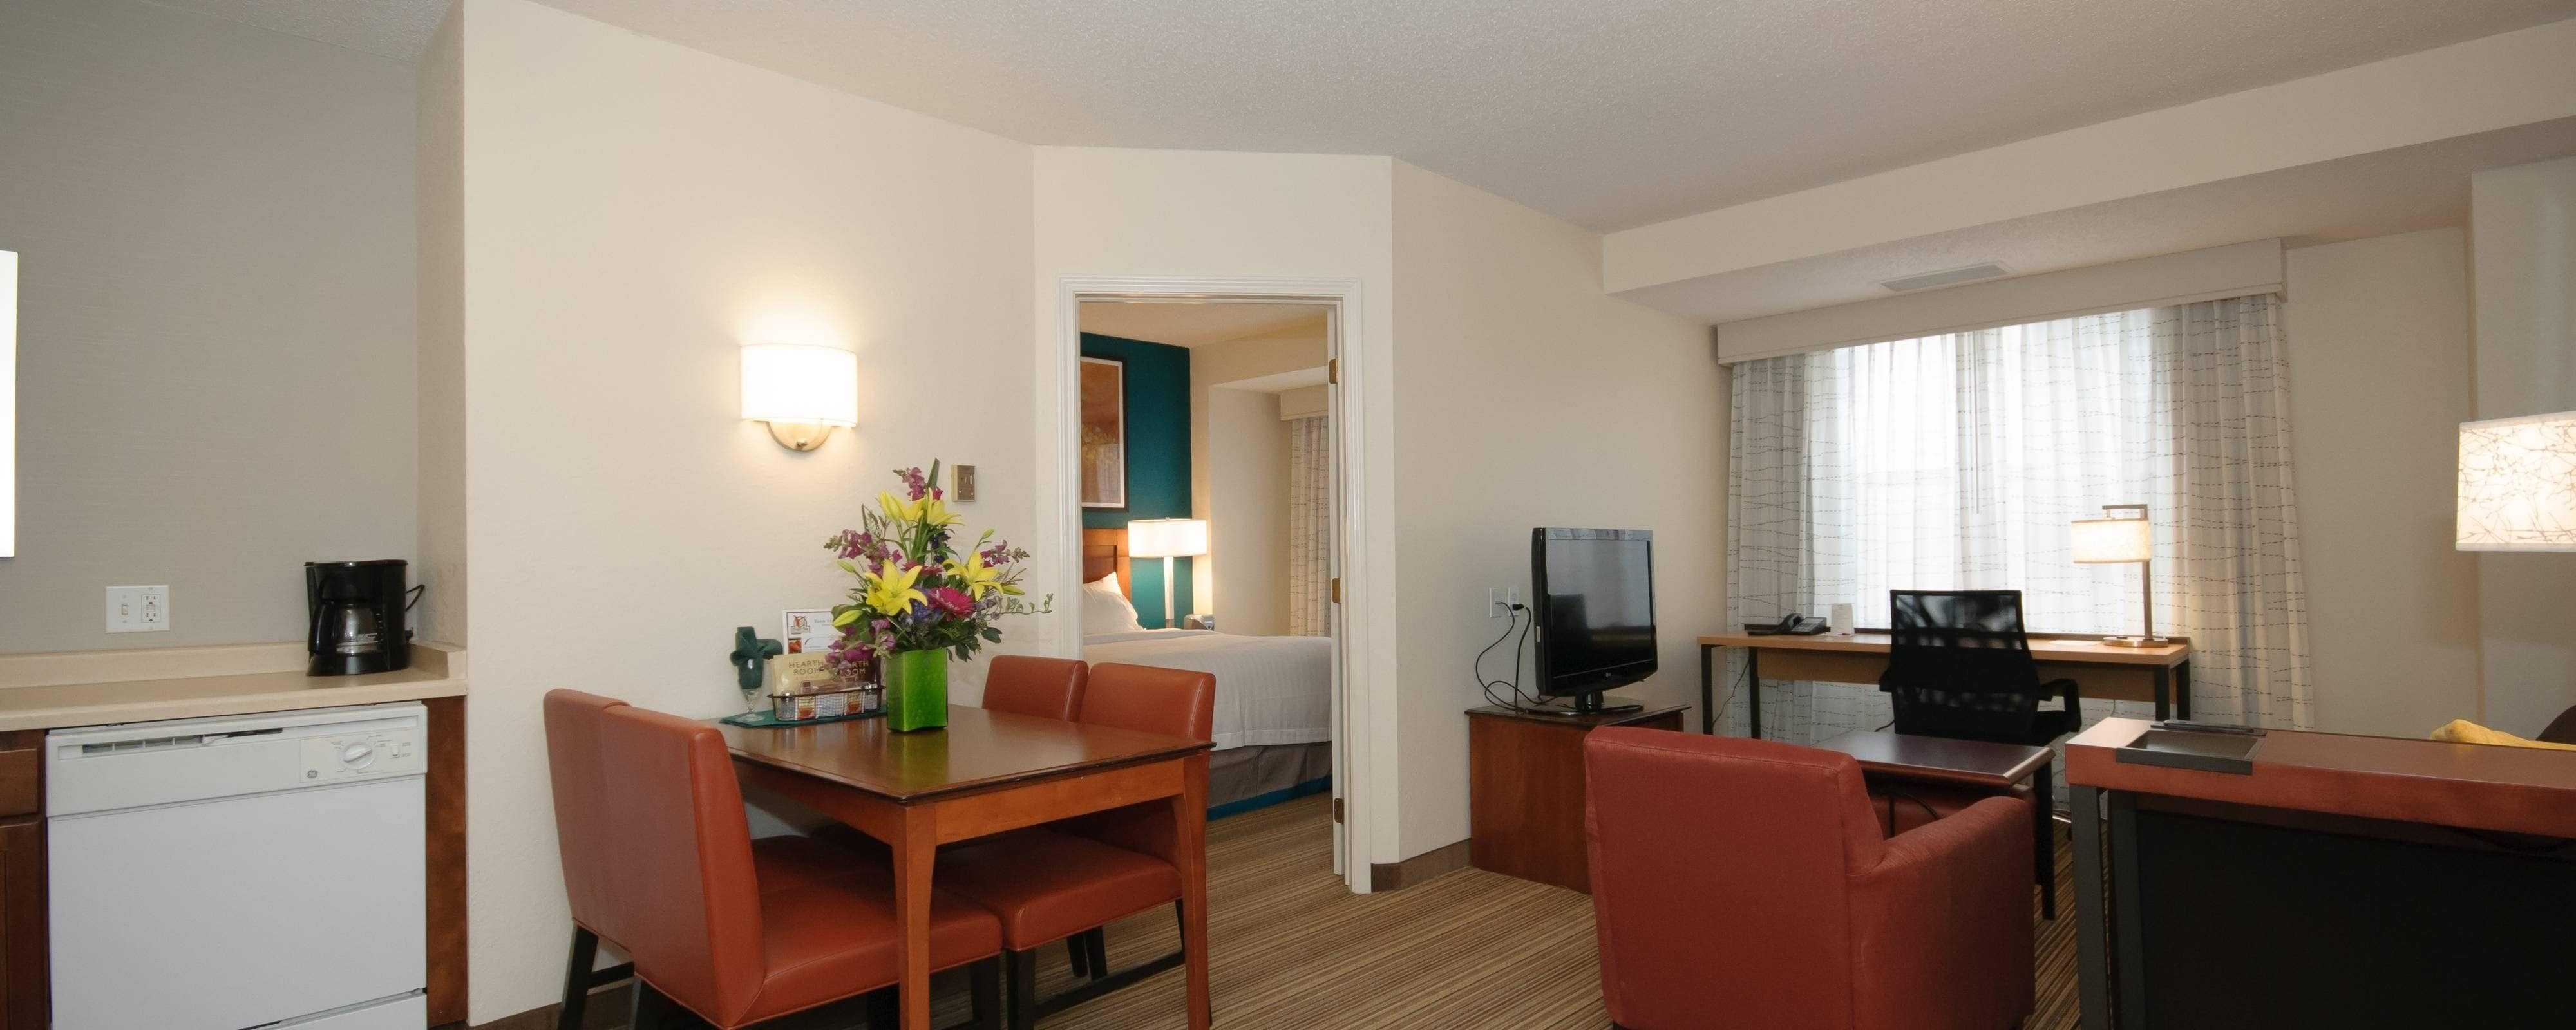 Residence Inn Bedroom